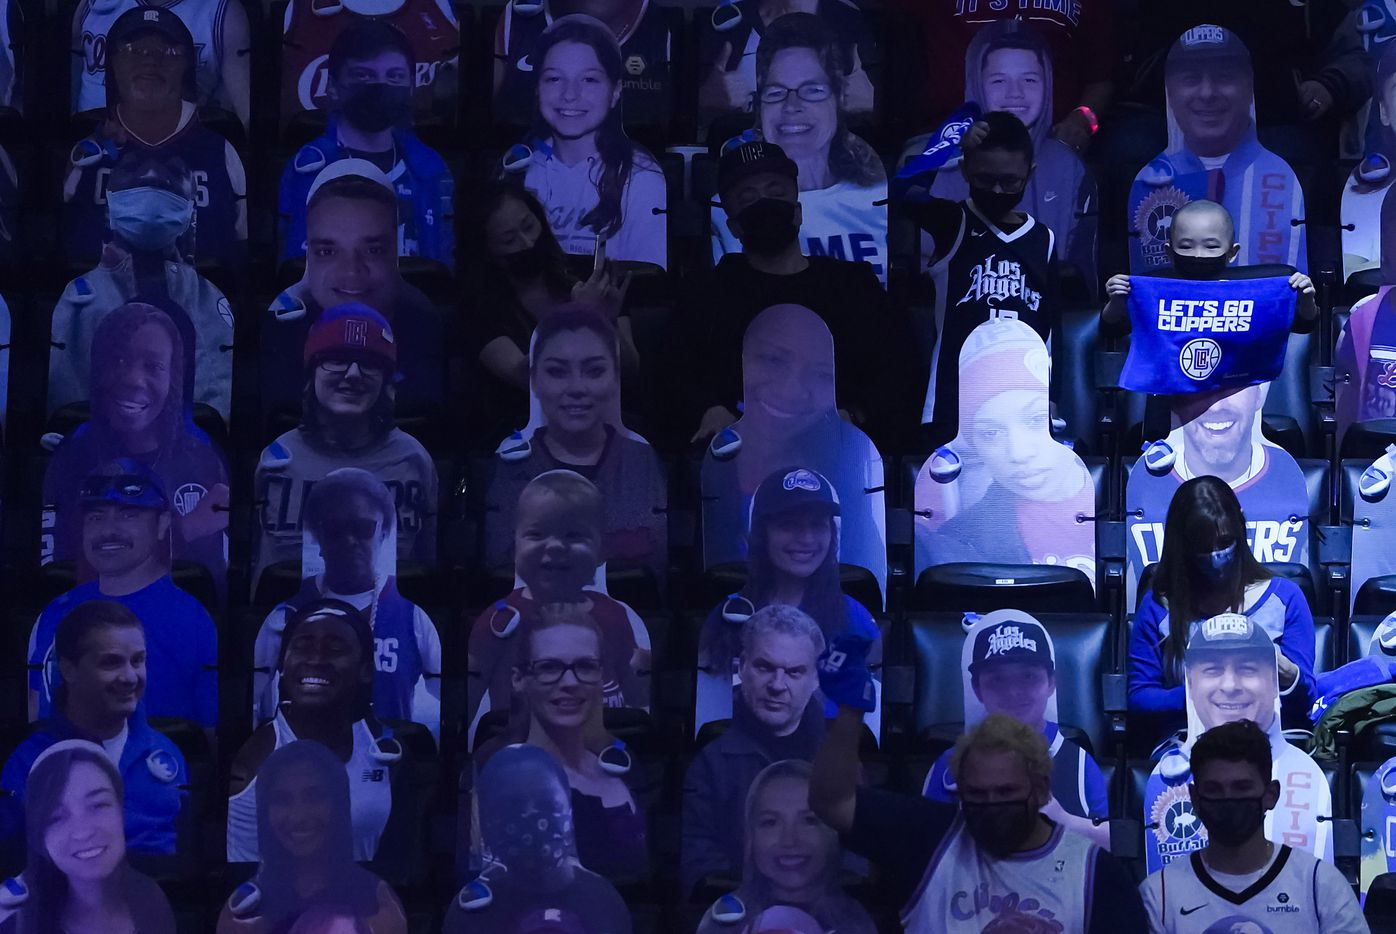 LA Clippers fans cheer among cardboard cutouts before an NBA playoff basketball game against the Dallas Mavericks at Staples Center on Tuesday, May 25, 2021, in Los Angeles.